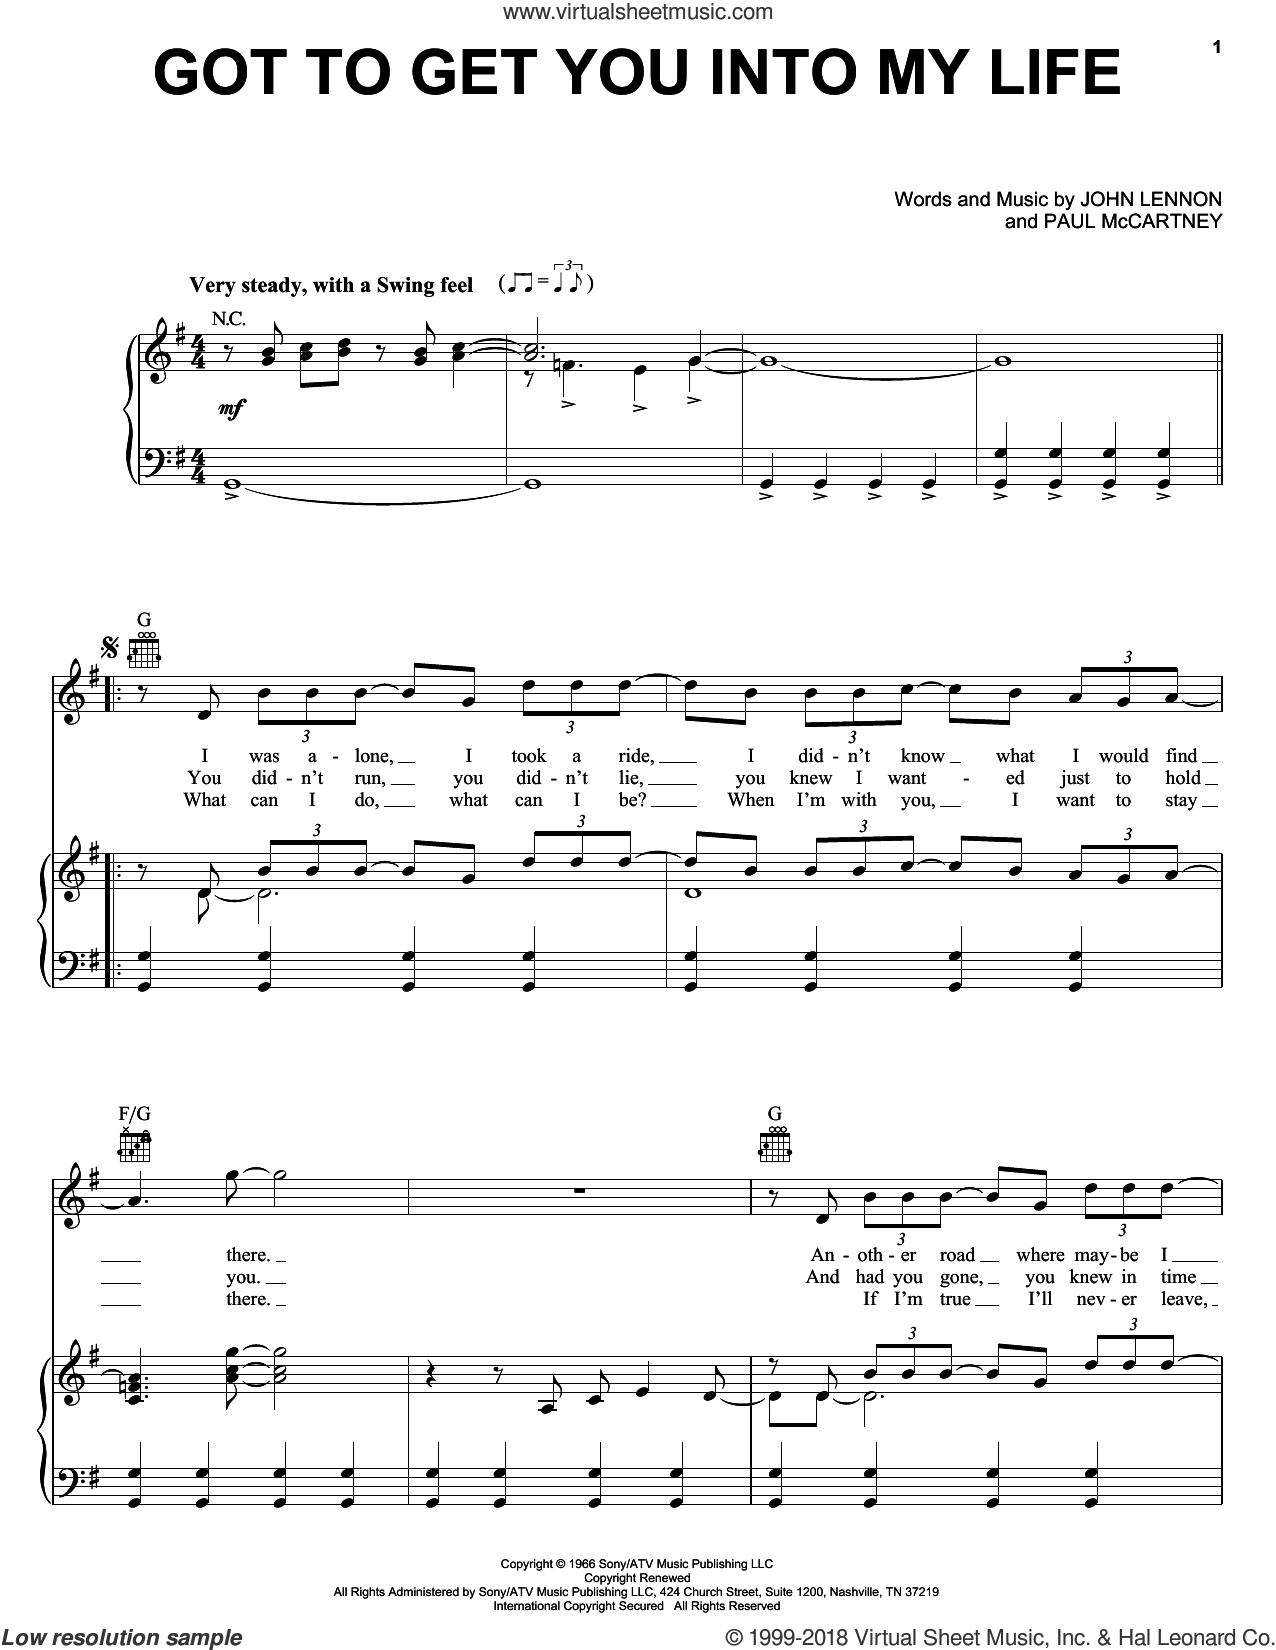 Got To Get You Into My Life sheet music for voice, piano or guitar by The Beatles, John Lennon and Paul McCartney, intermediate skill level